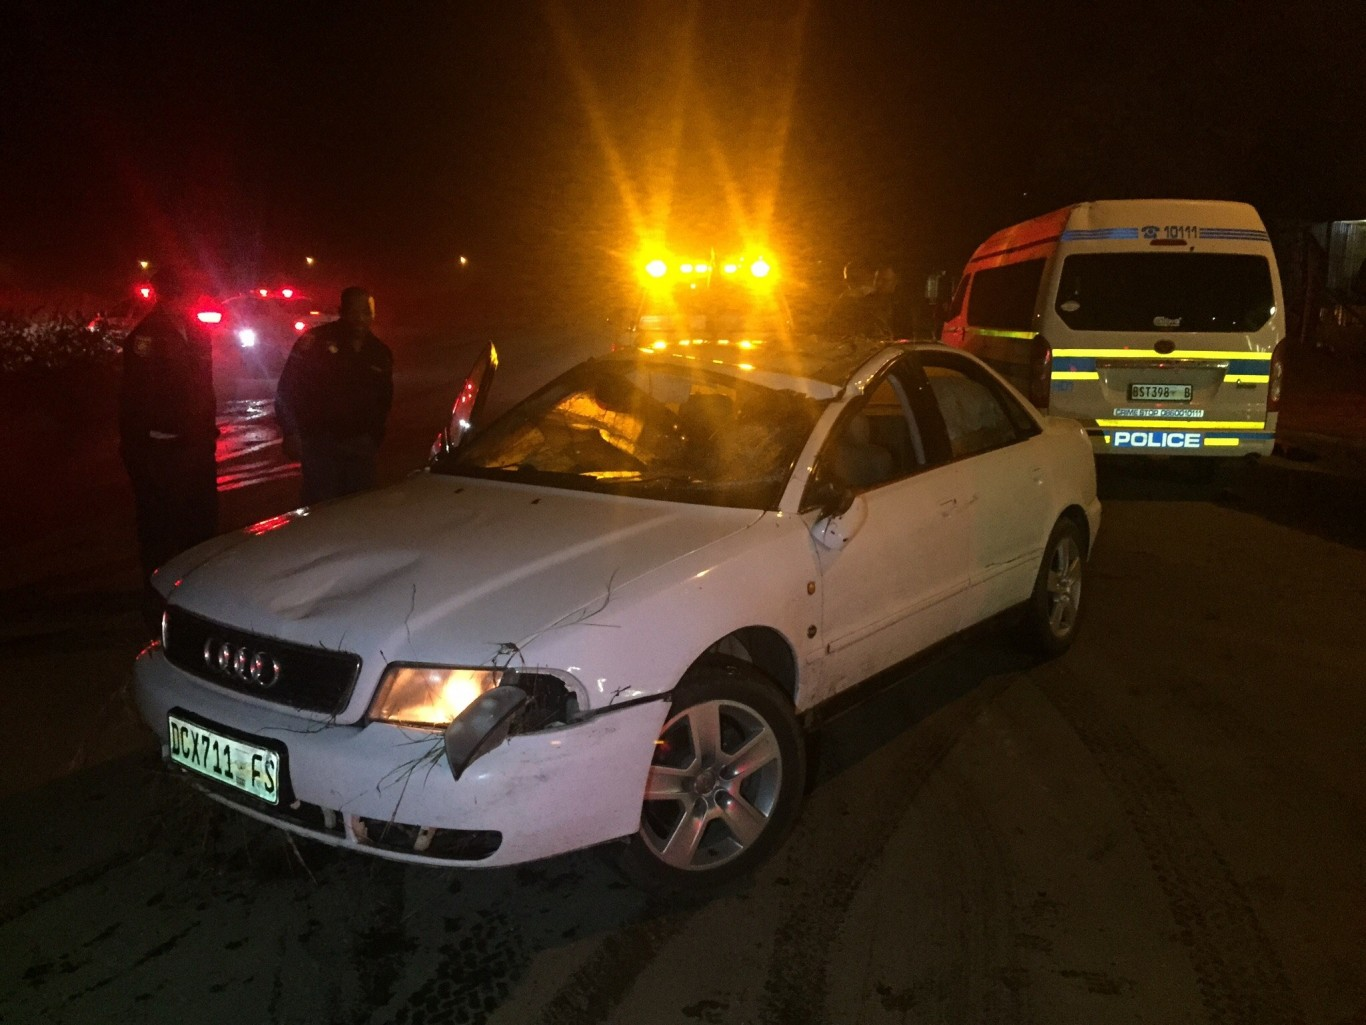 Bloemfontein driver saved from drowning after crashing into storm water trench